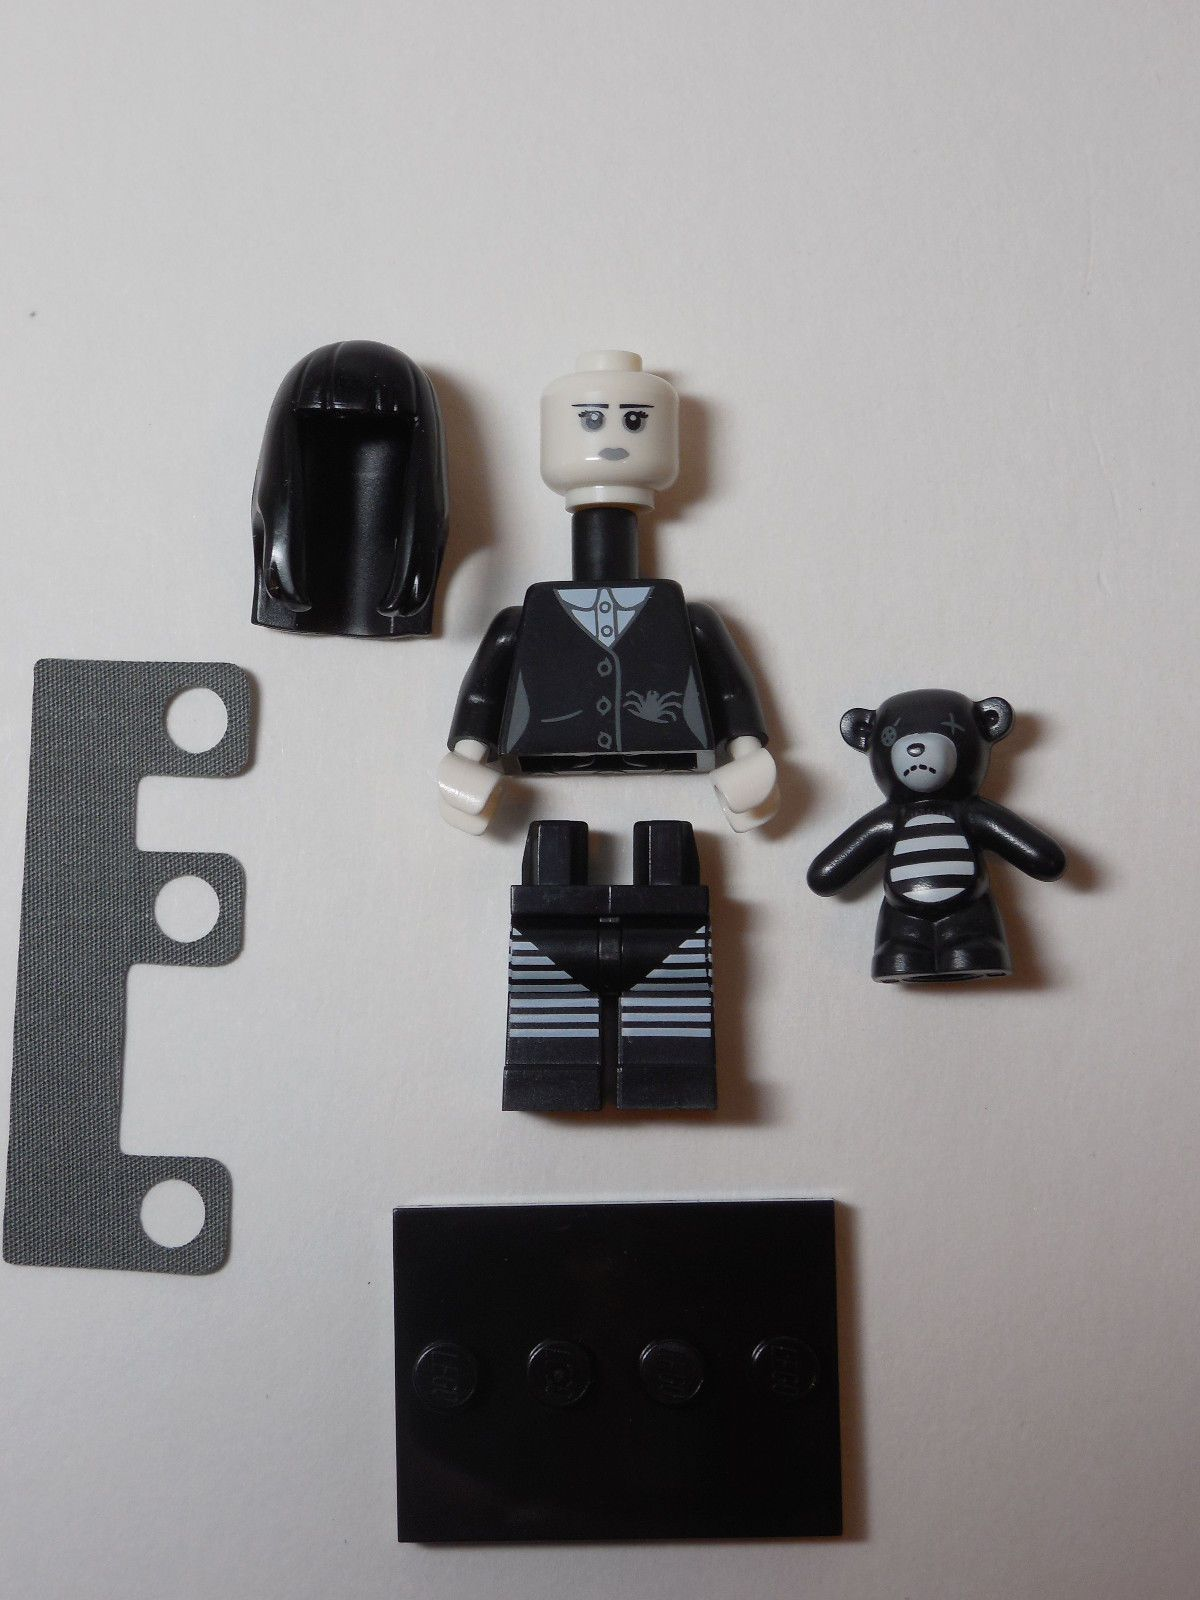 REAL Genuine Lego 71001 Series 10 Minifigure no 10 Sea Captain